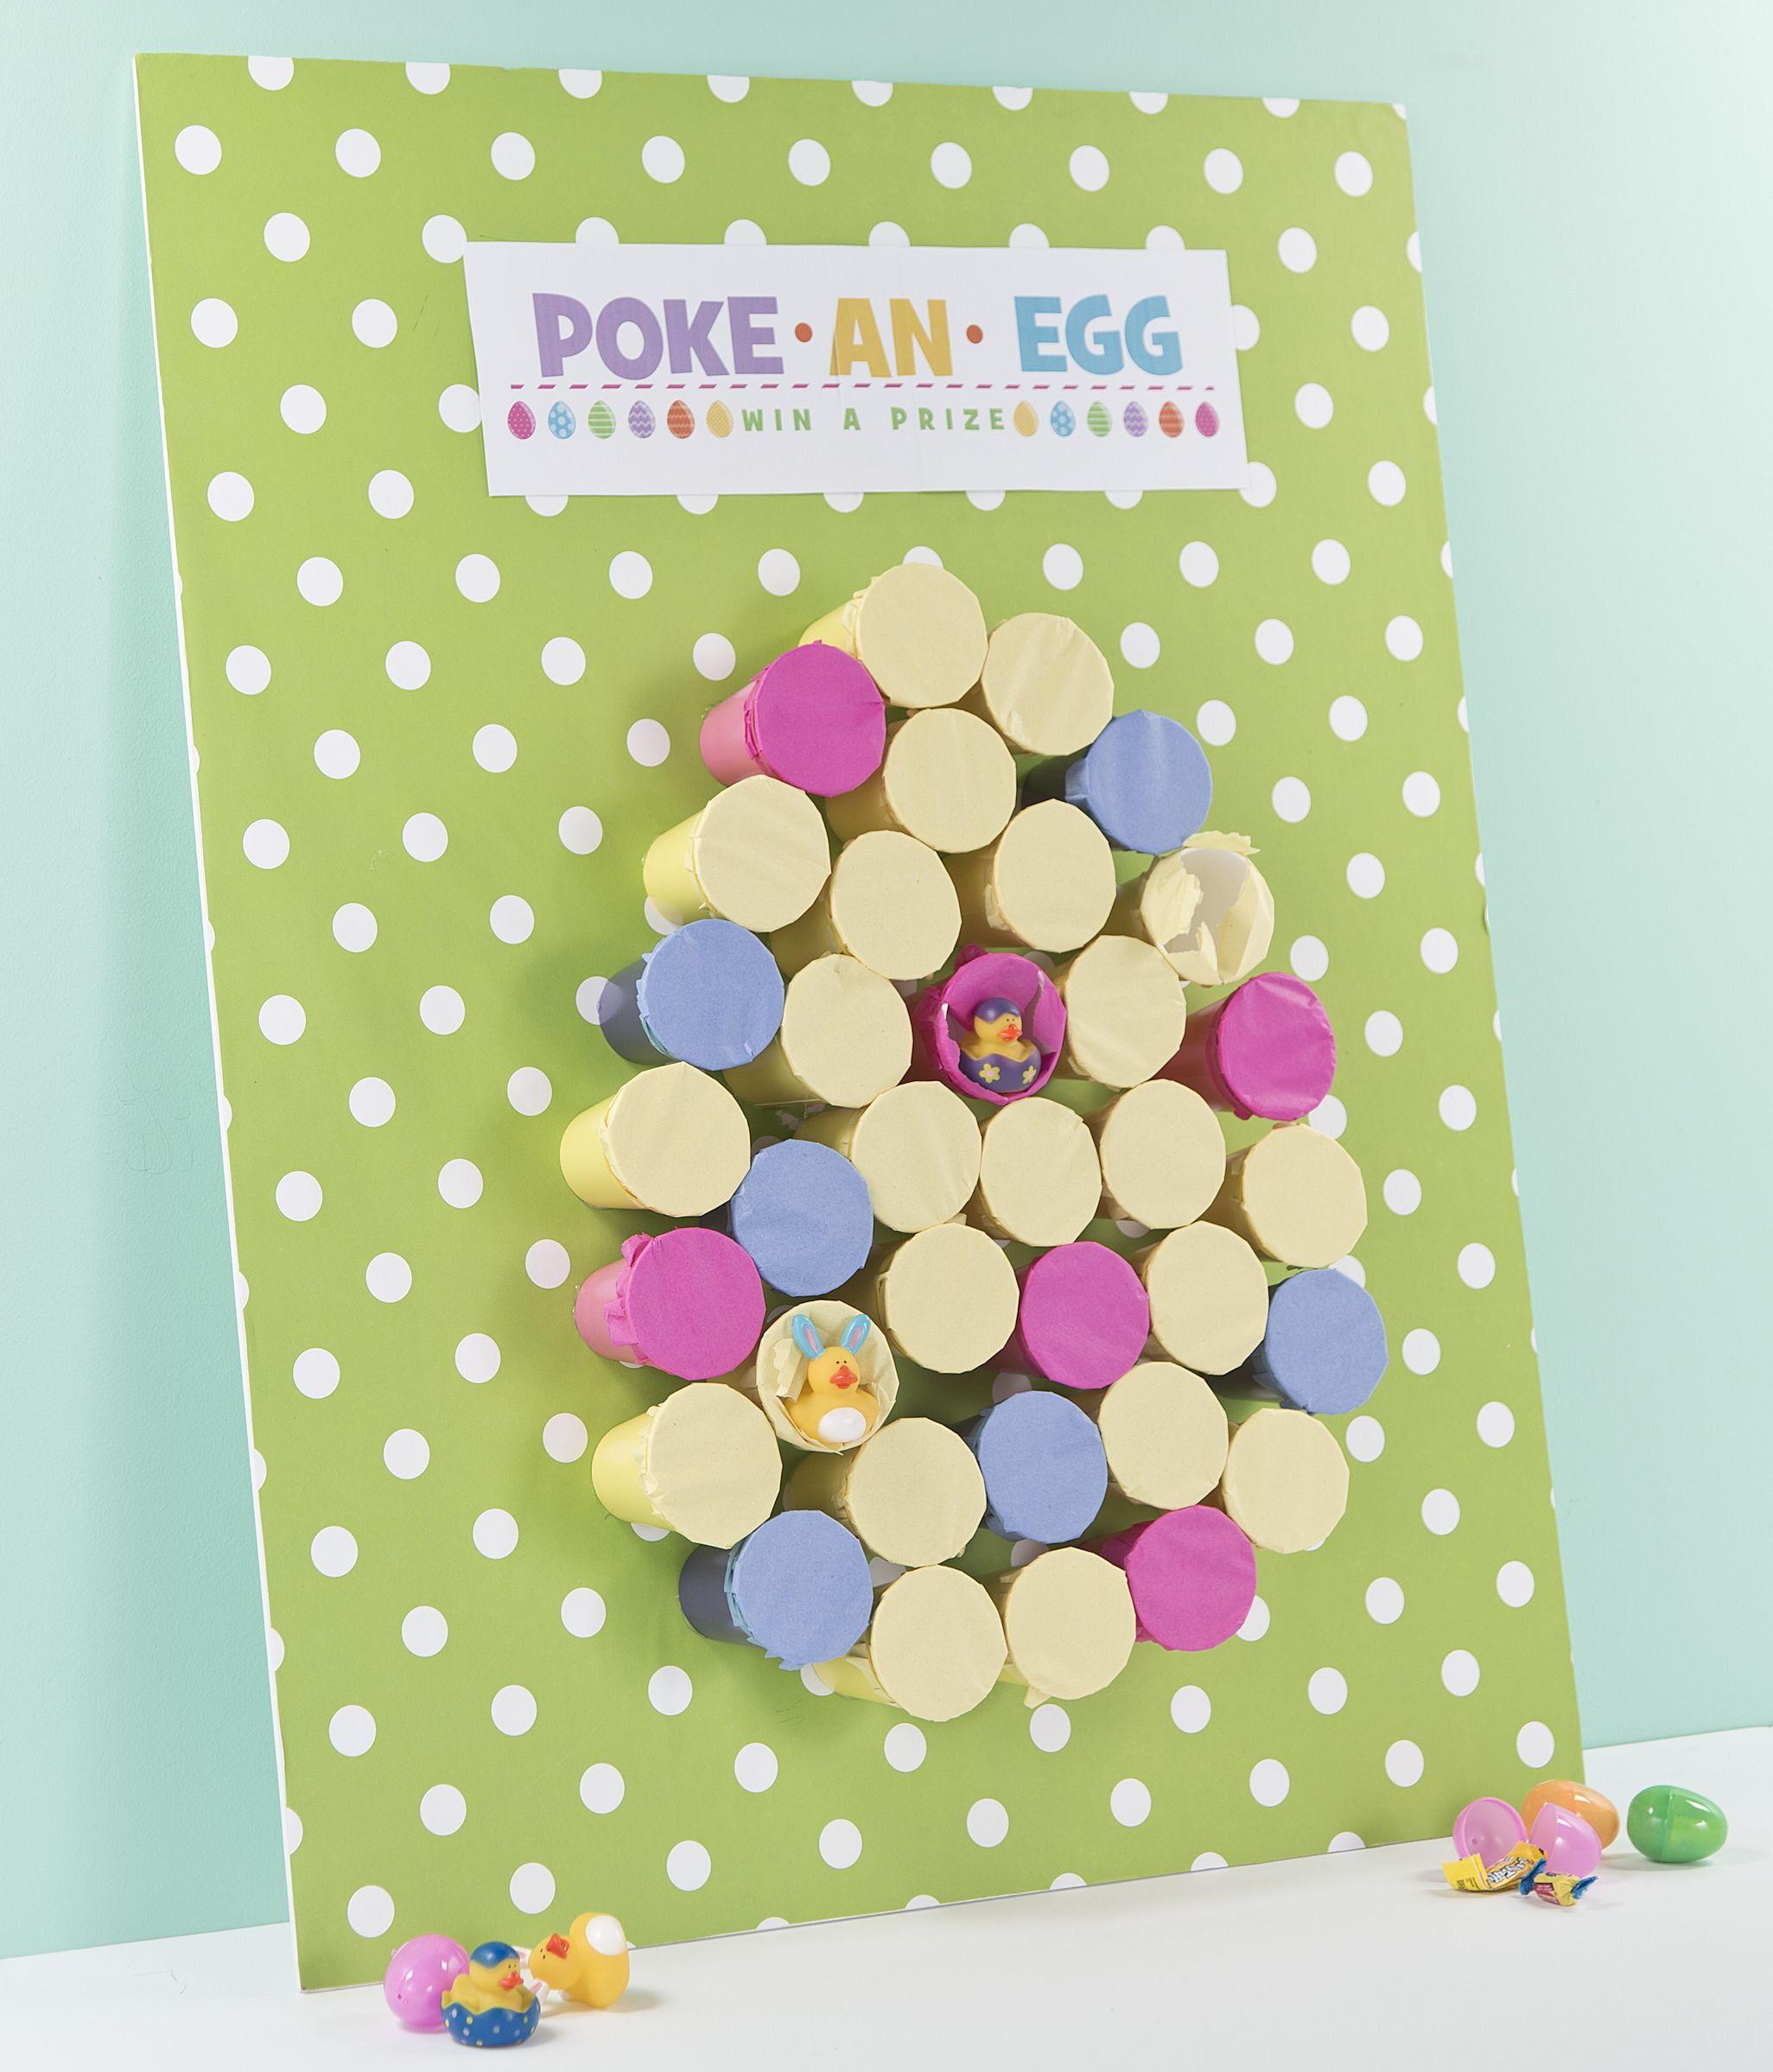 fun easter game ideas | easter | pinterest | easter games, easter